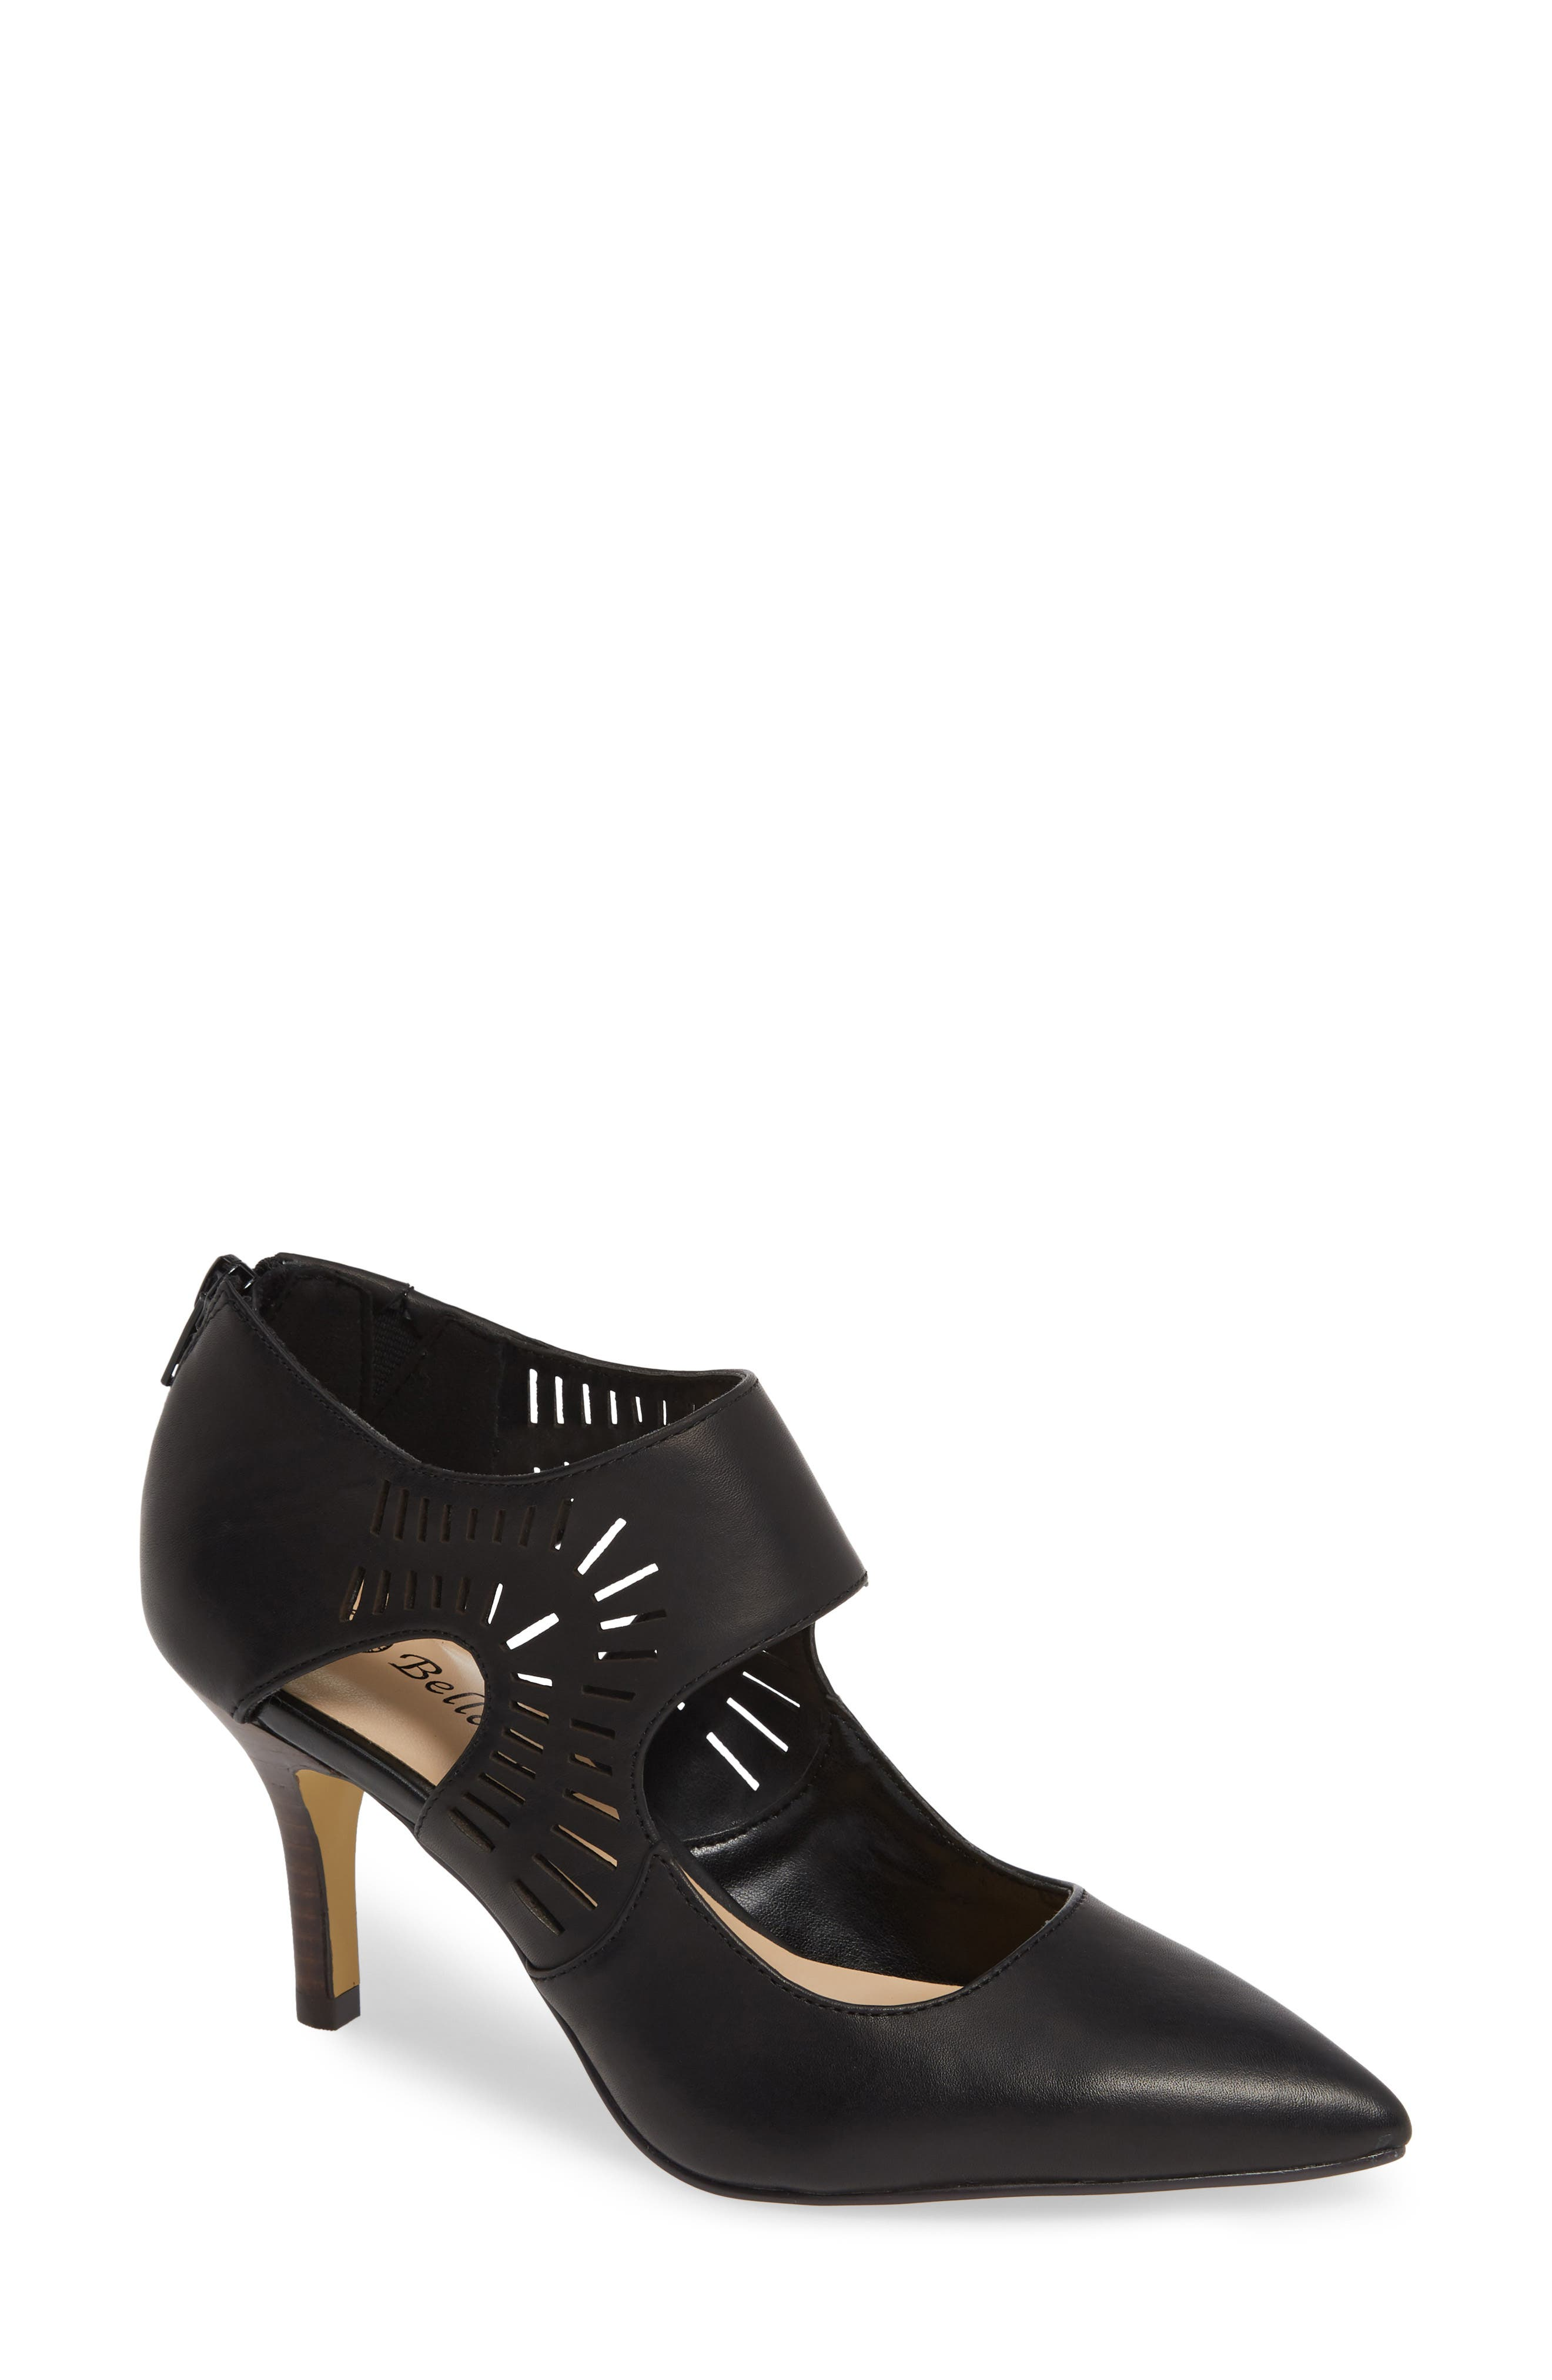 BELLA VITA Dani Perforated Pump, Main, color, BLACK LEATHER